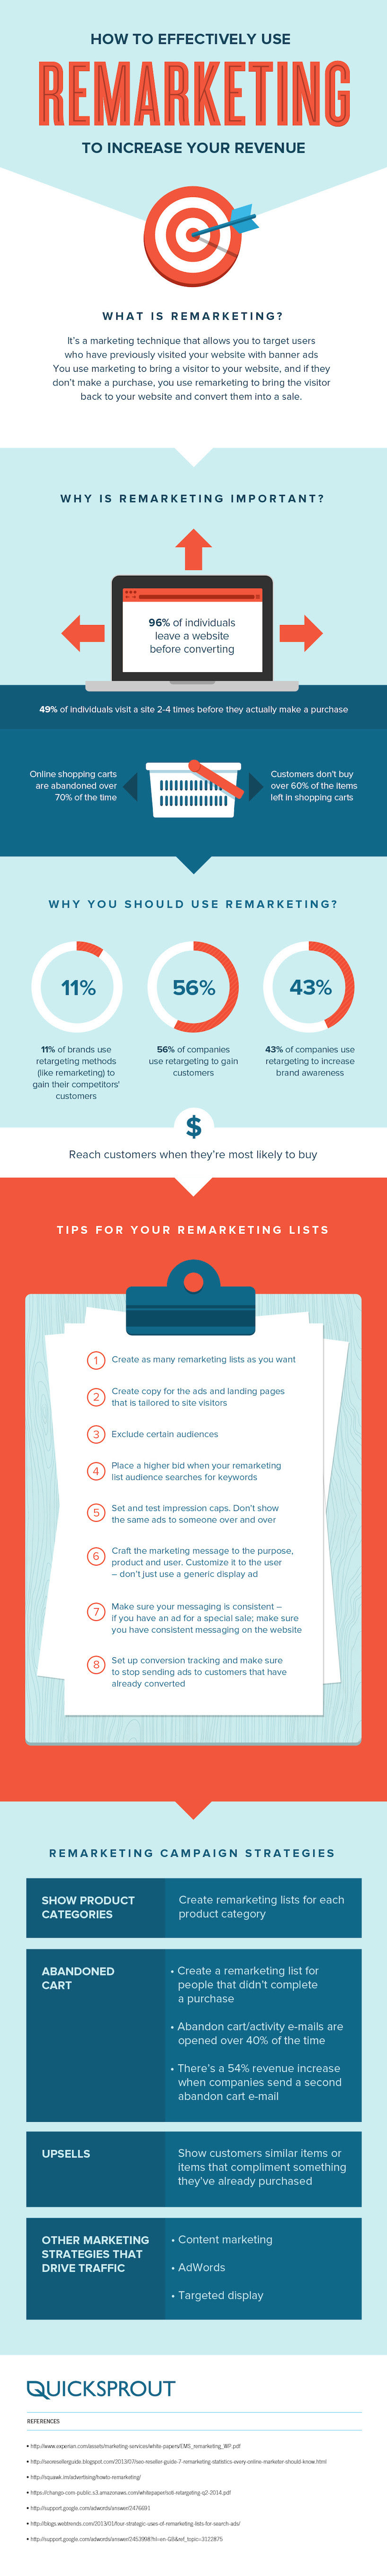 Infographic: How to Effectively Use Remarketing to Increase Your Revenue